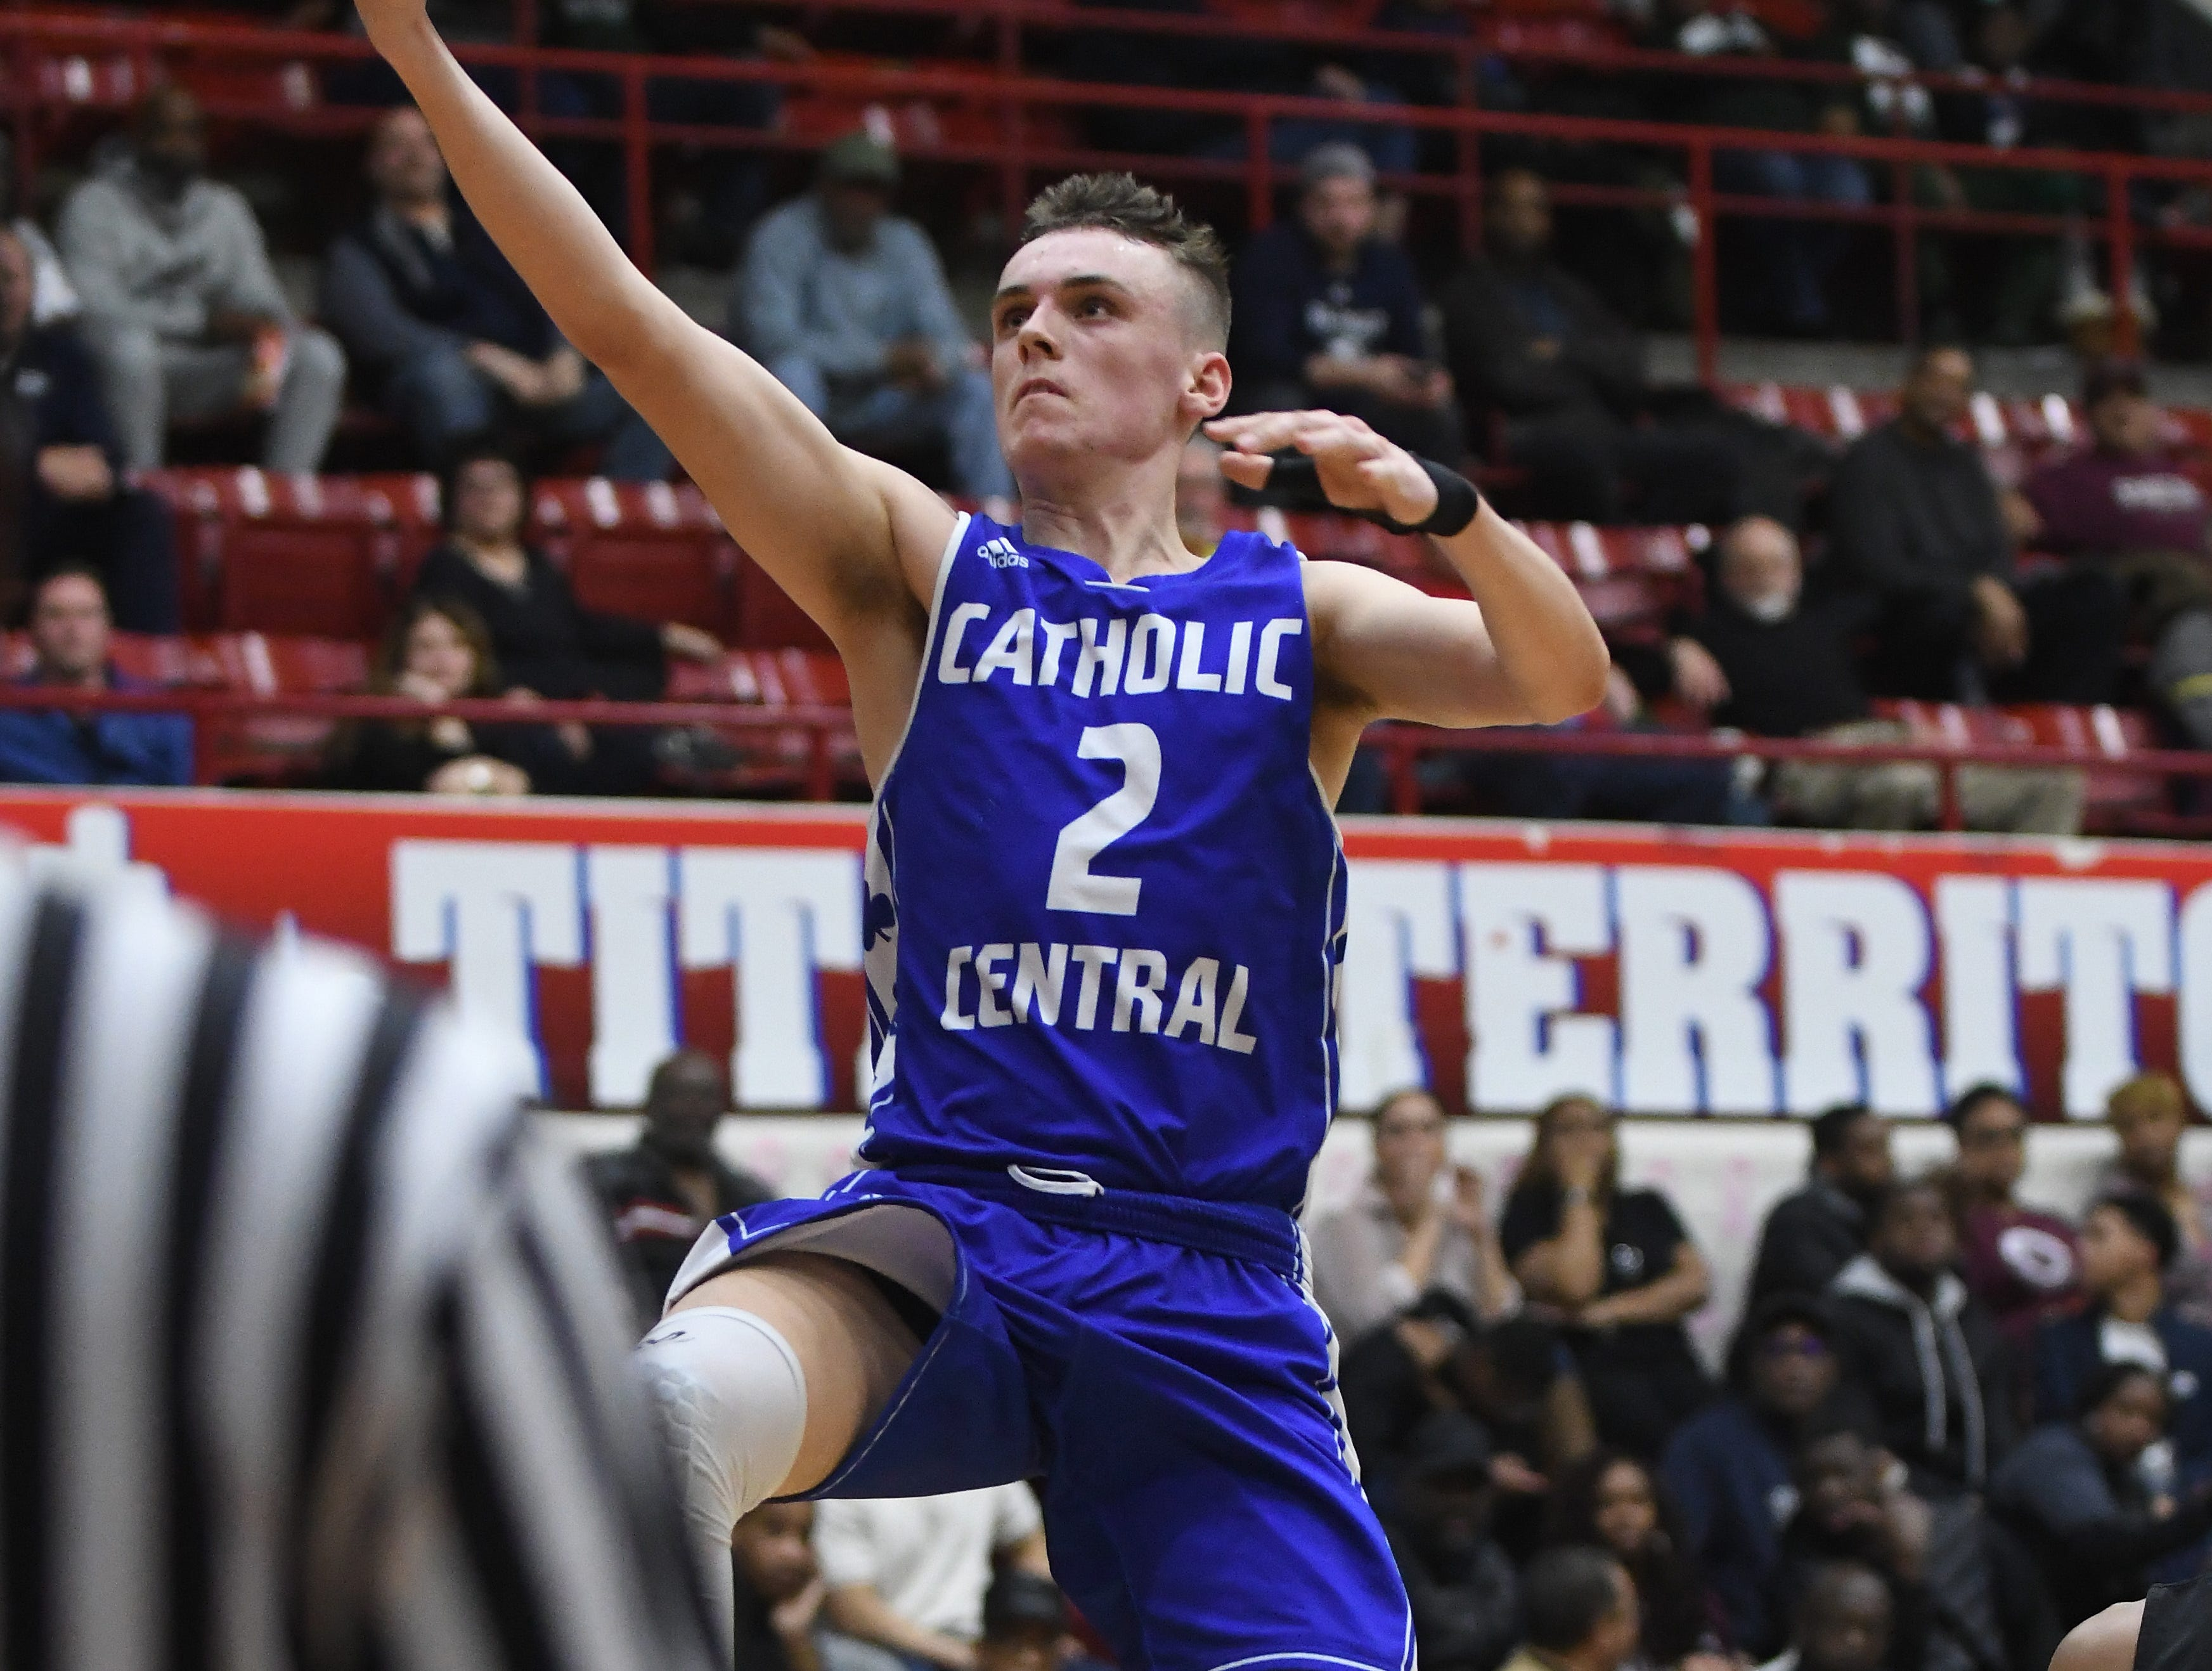 Catholic Central's Brendan Downs lays in two points late in the second half of the consolation game.